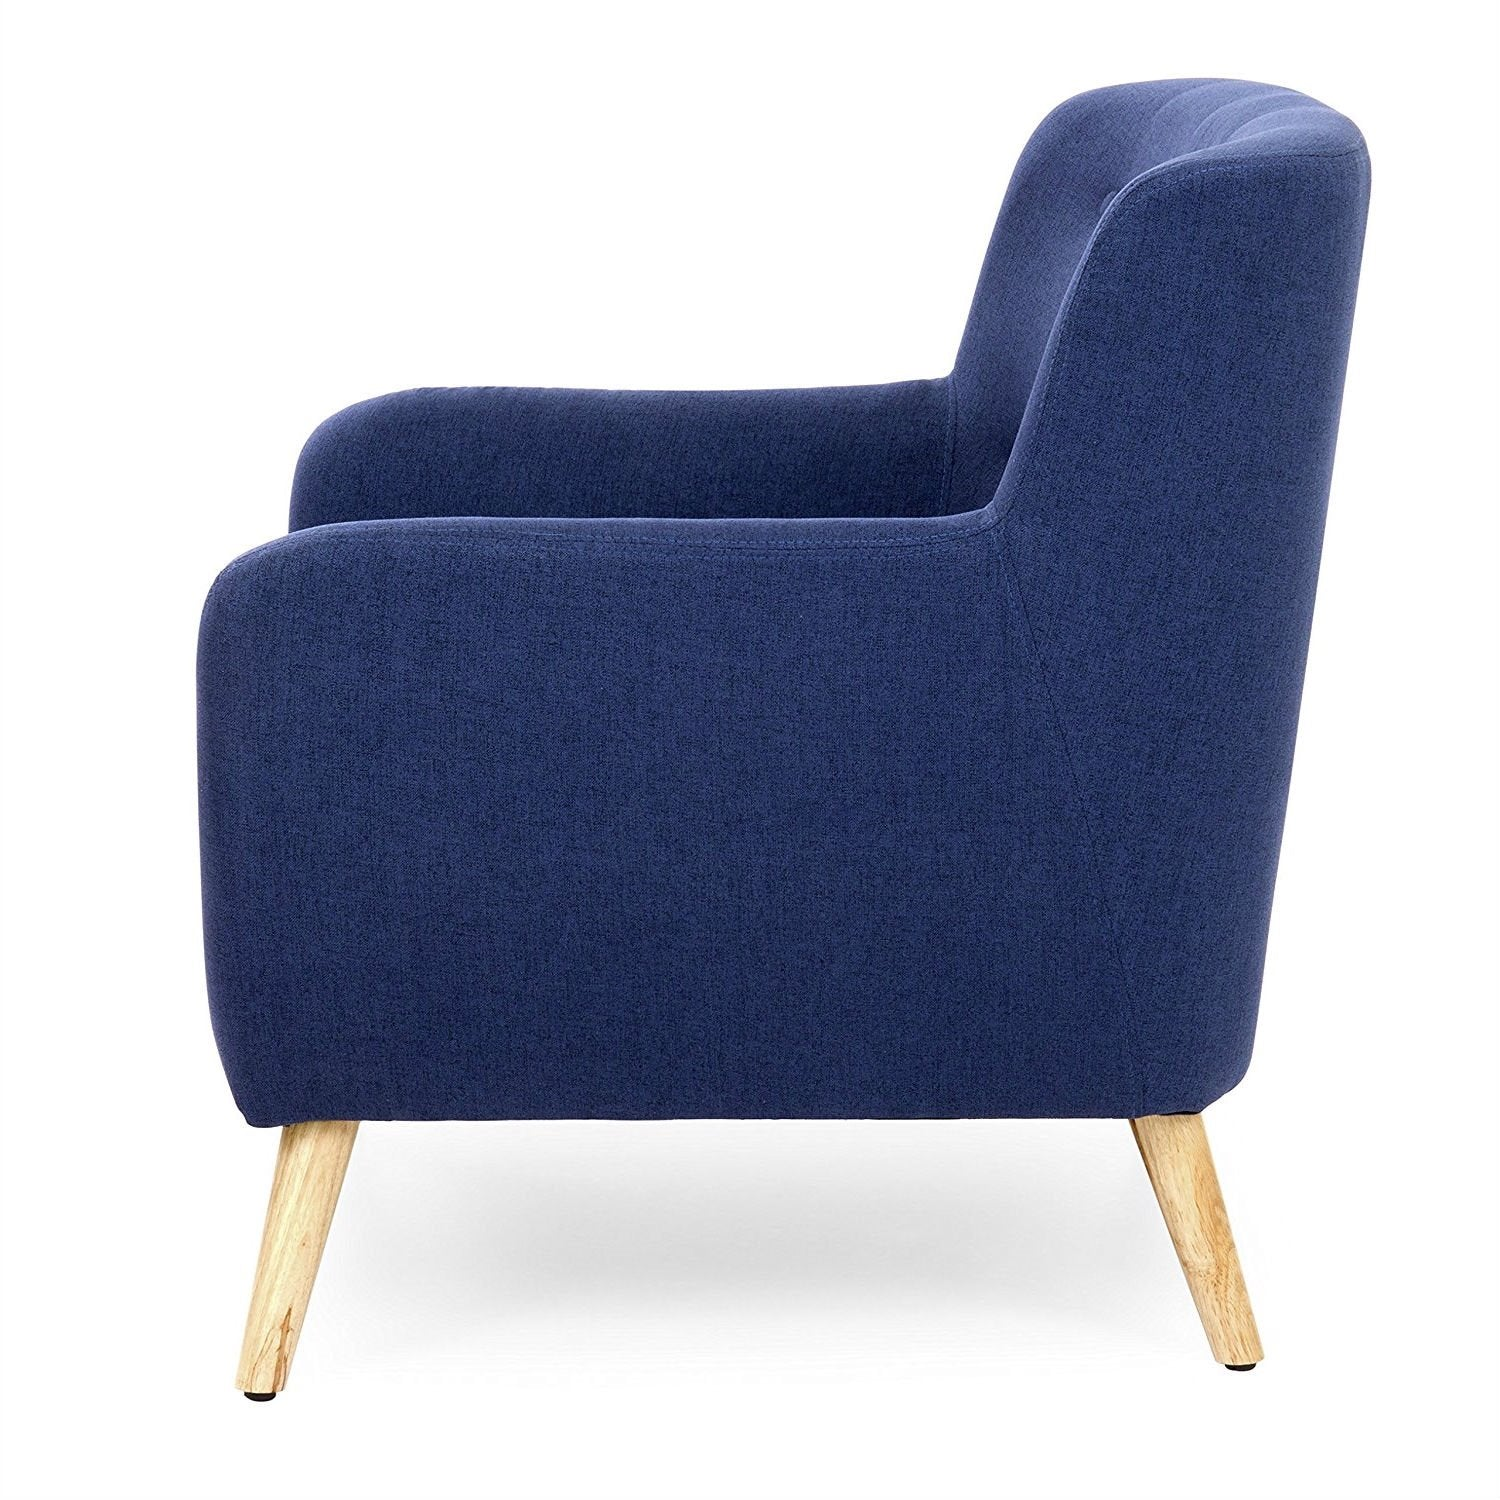 Modern Dark Blue Linen Upholstered Tufted Armchair w/Wood Legs